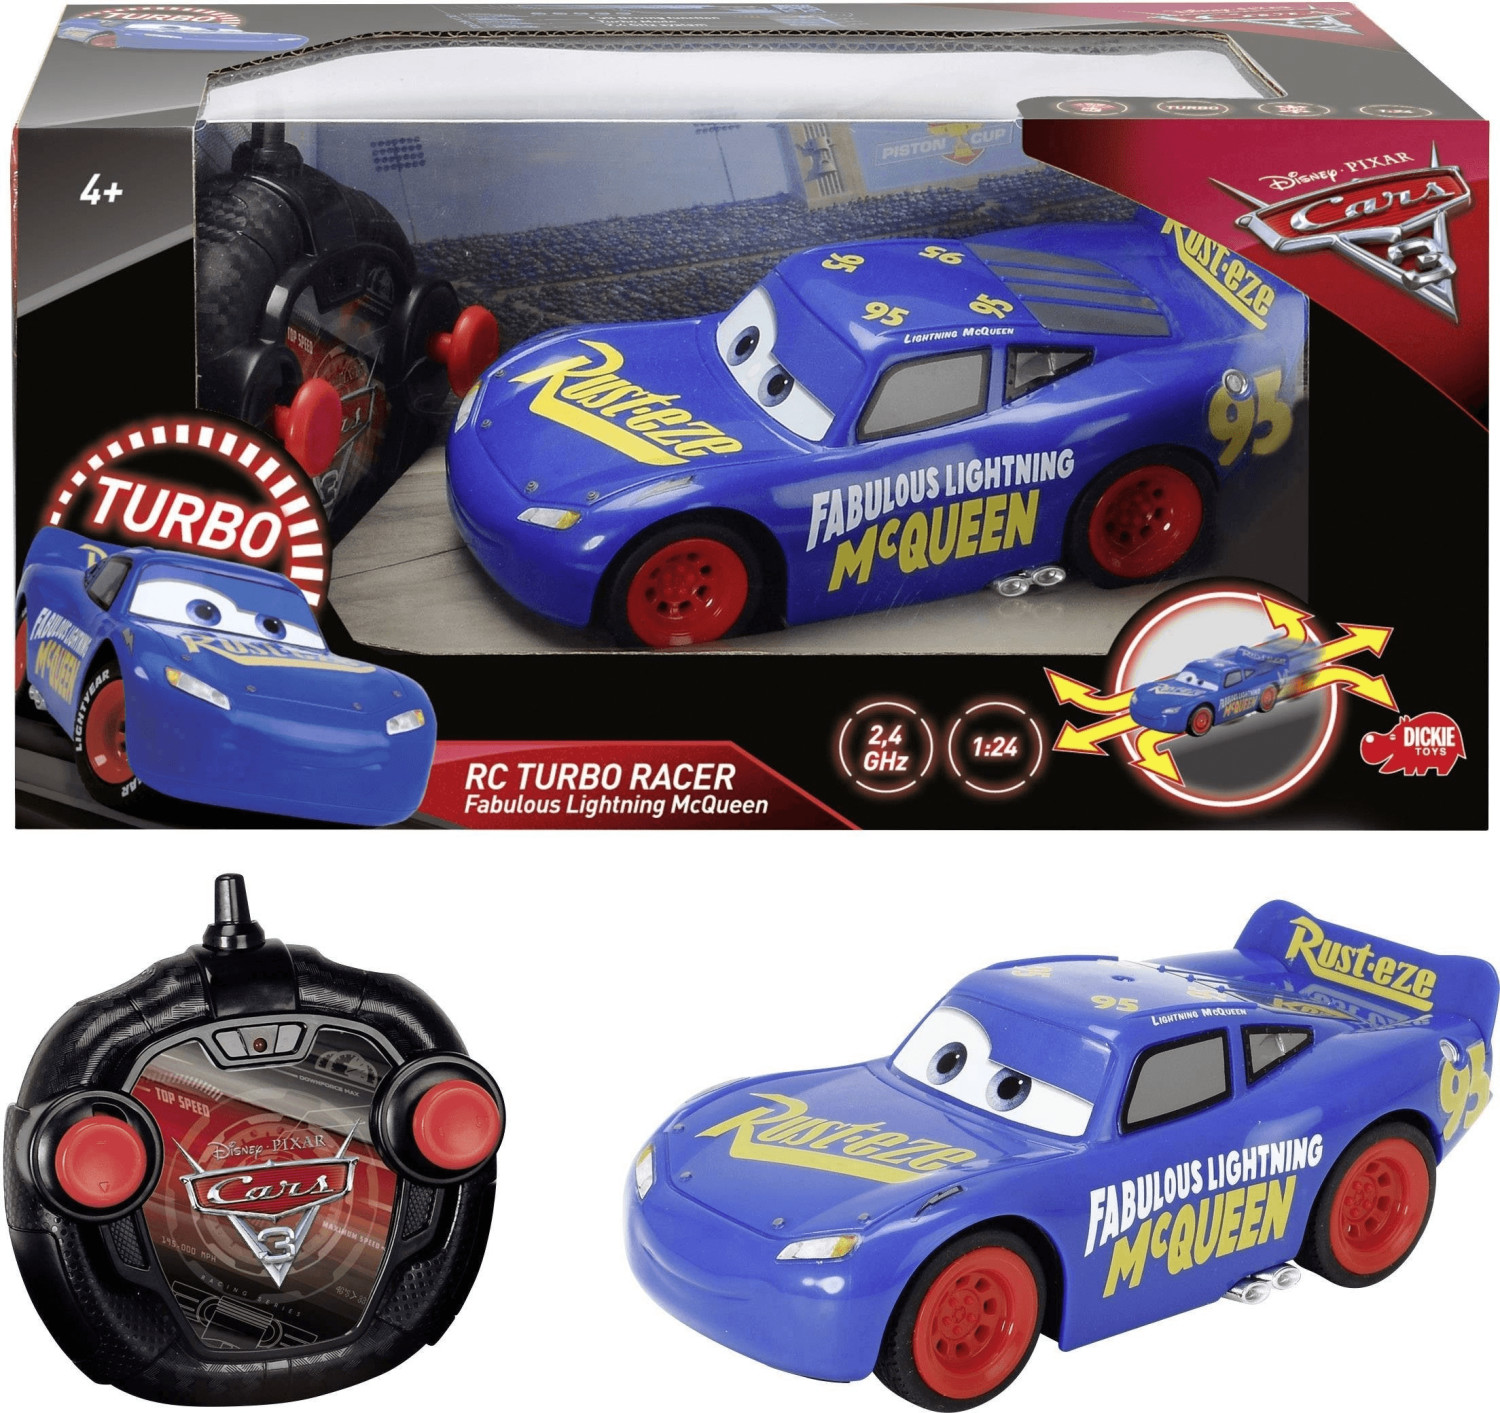 Schuco RC Cars 3 Fabulous Turbo Racer LMQ 1:24 (84009)